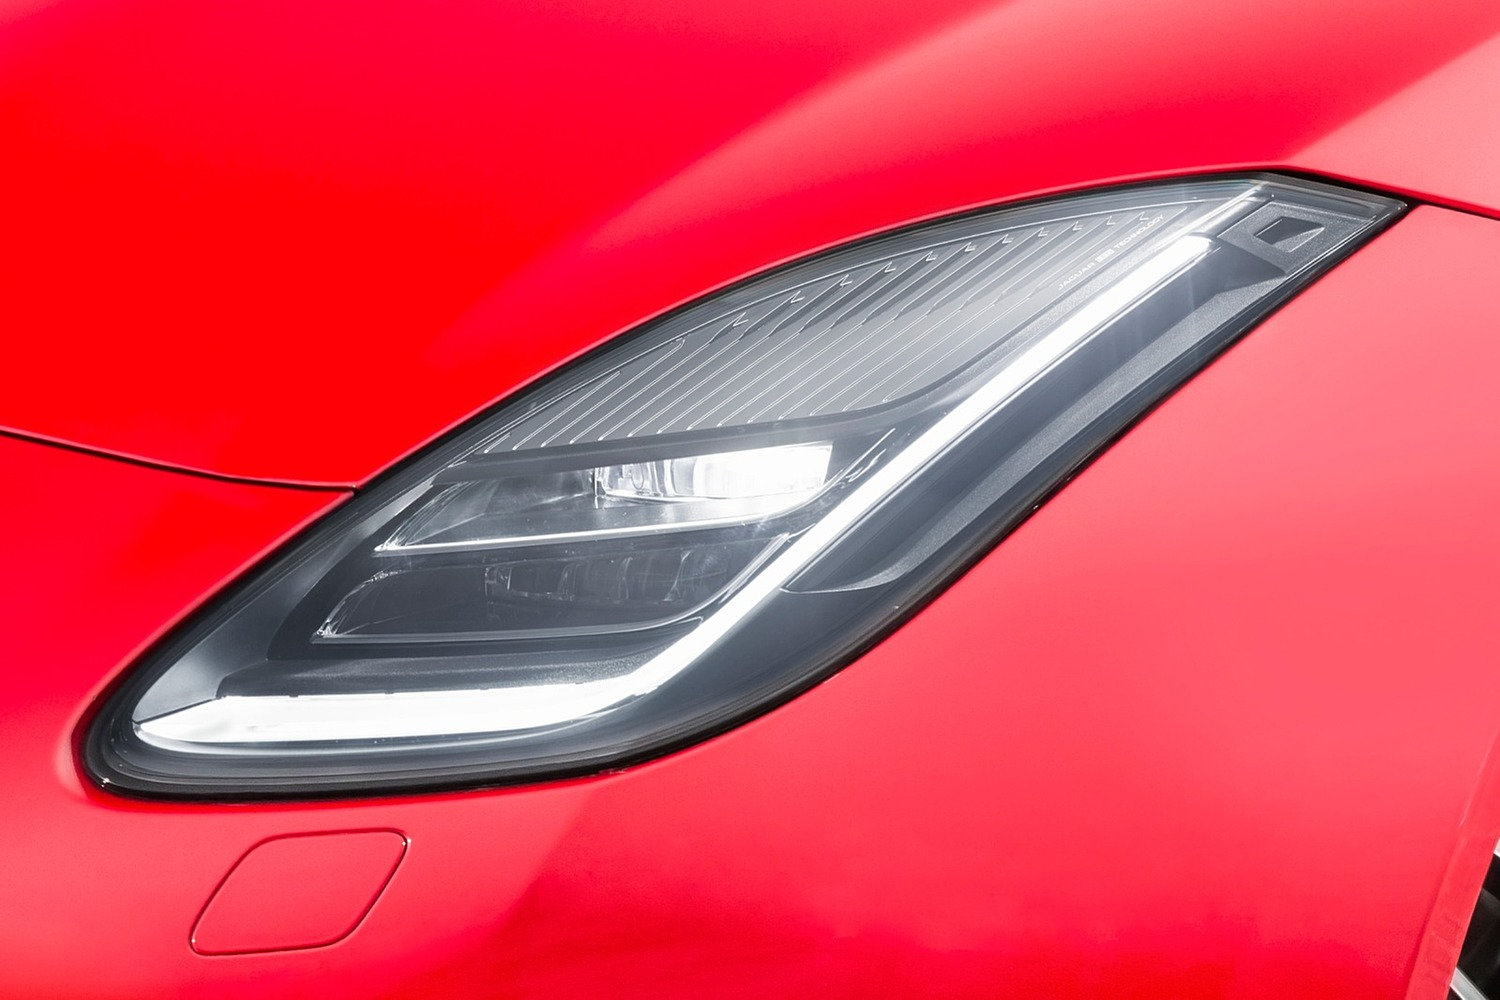 2018 Jaguar F-TYPE Coupe Headlamp Detail